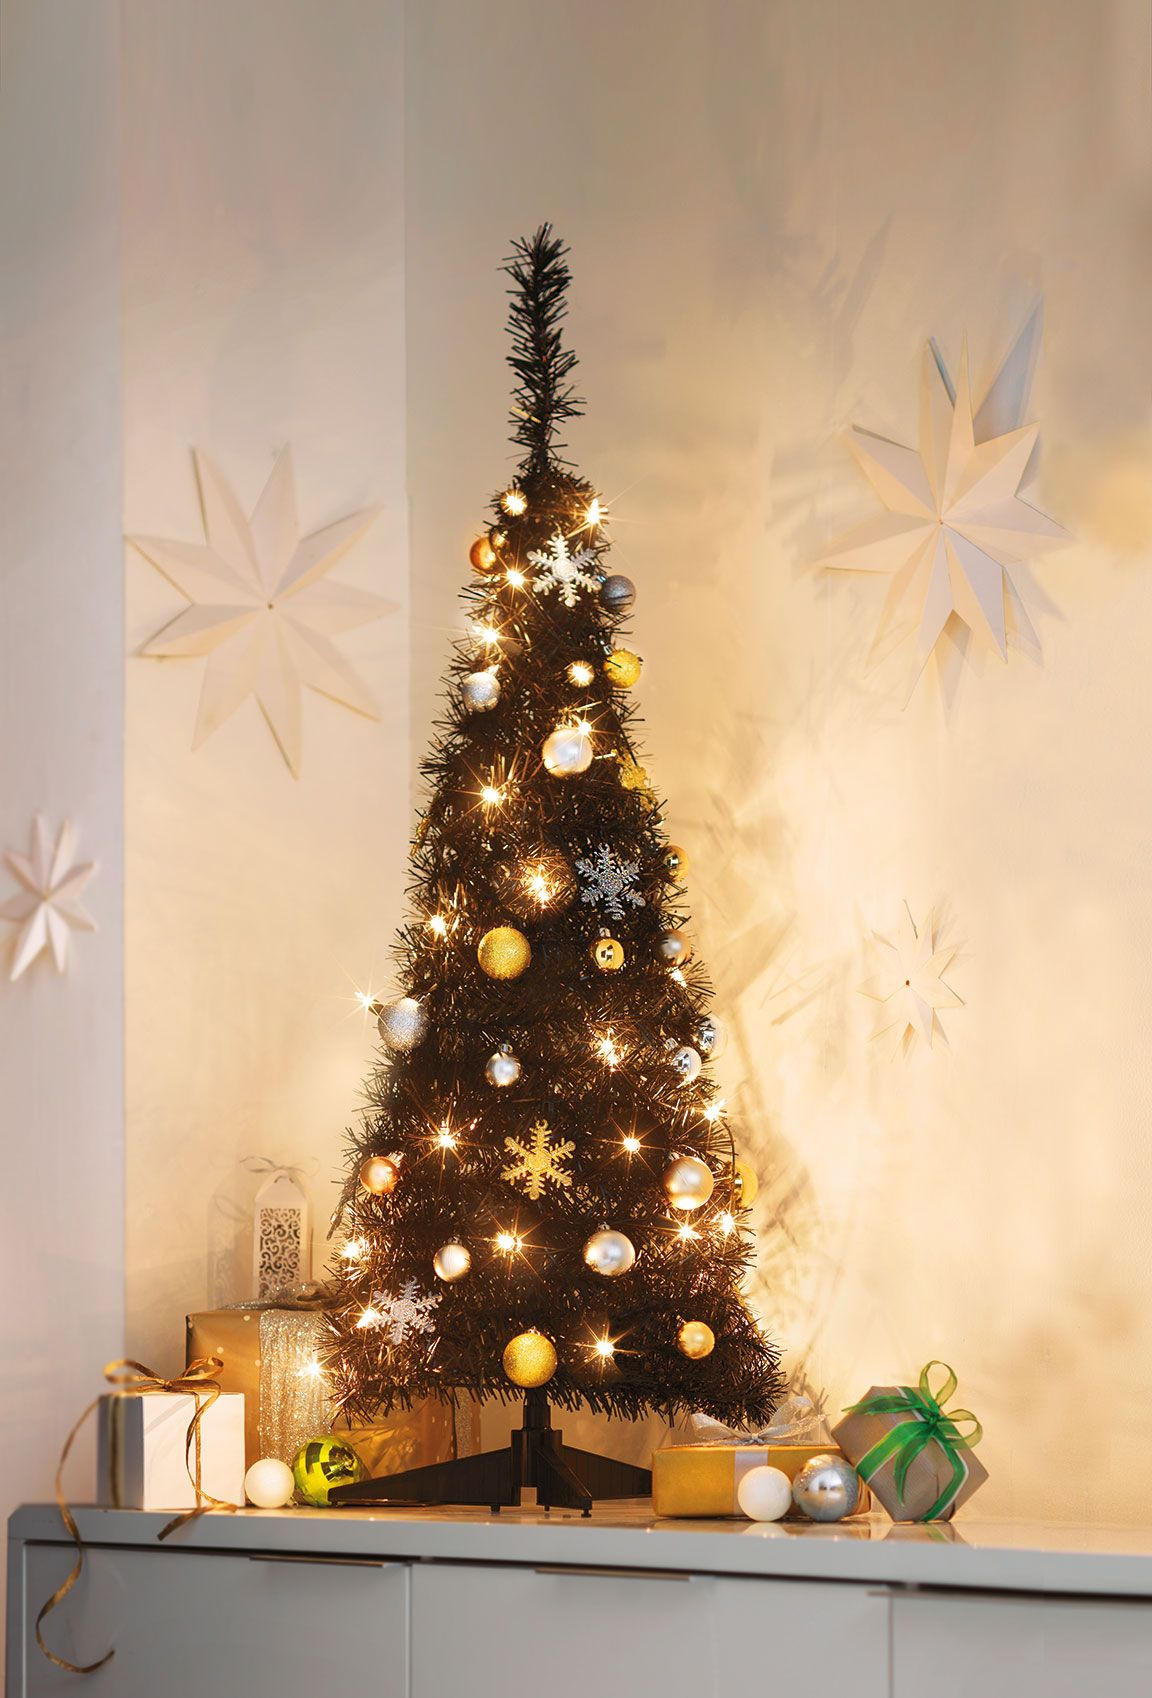 Mixing Black With Metallic Decorations, This Pop Up Christmas Tree